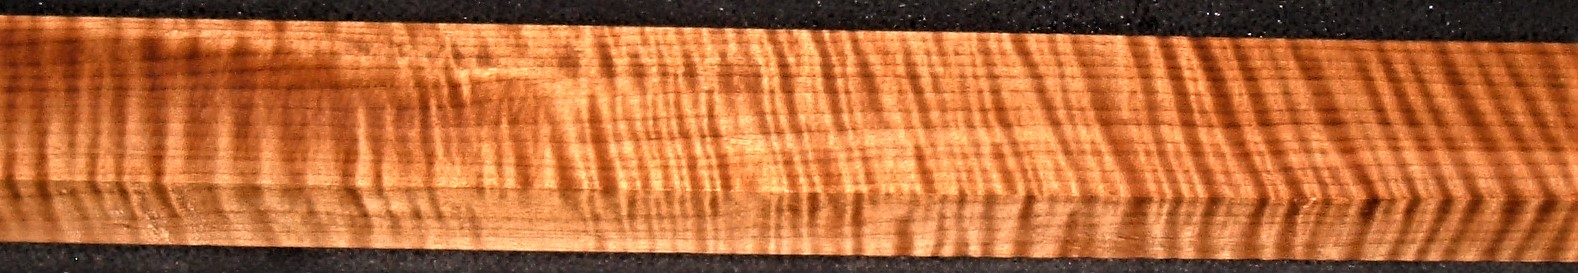 QRM2009-177JK, 1-3/16x2-1/2x44, Quartersawn Roasted Curly Maple